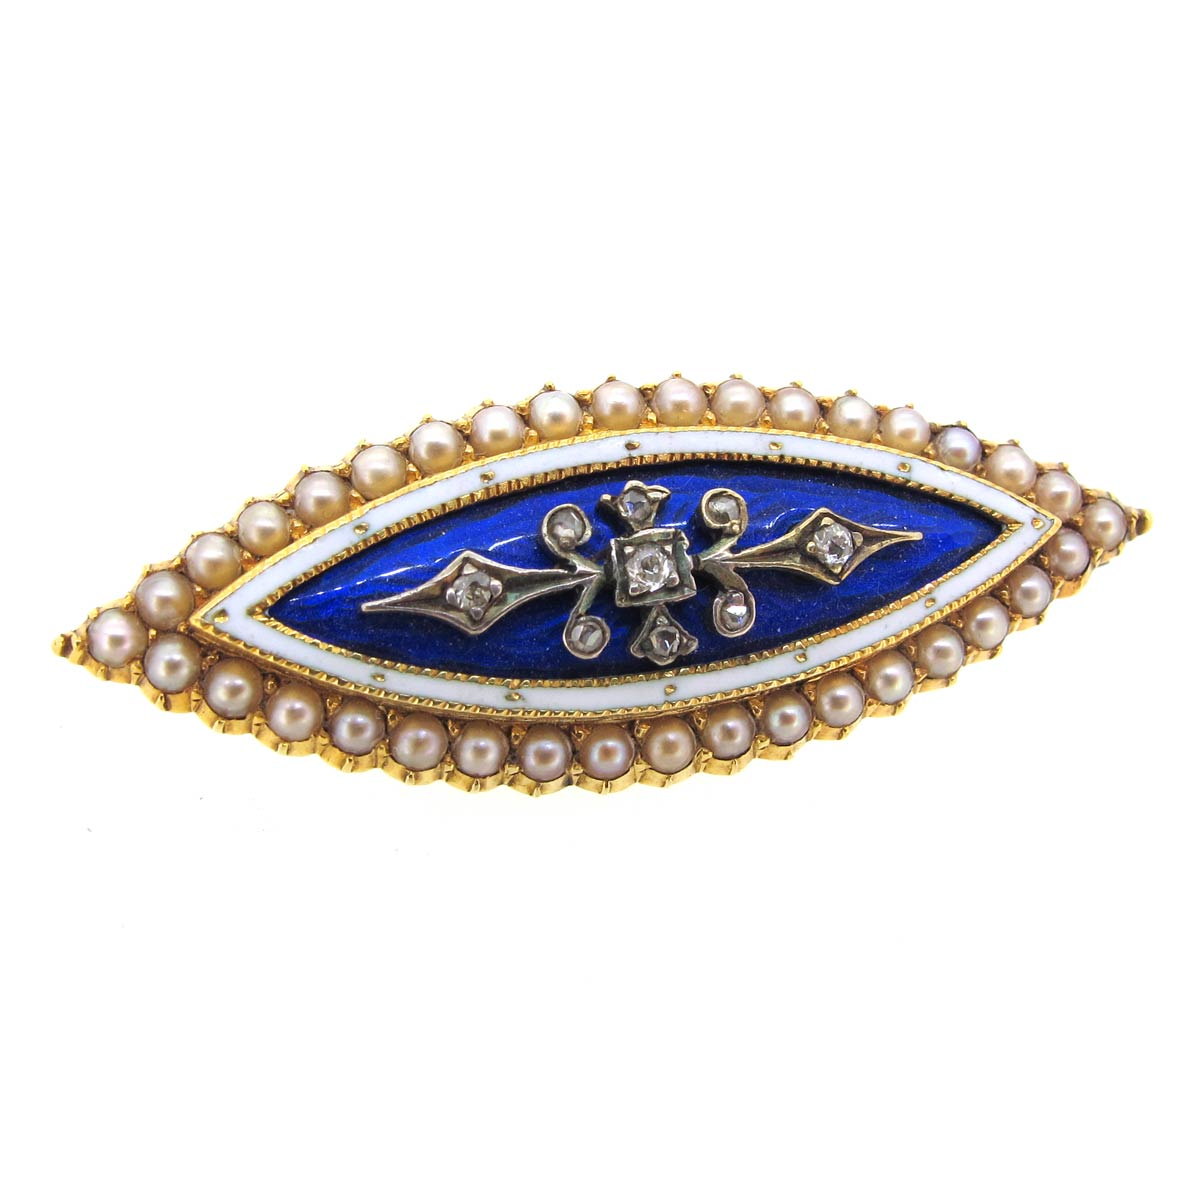 Antique Enamel, Pearl & Diamond Brooch